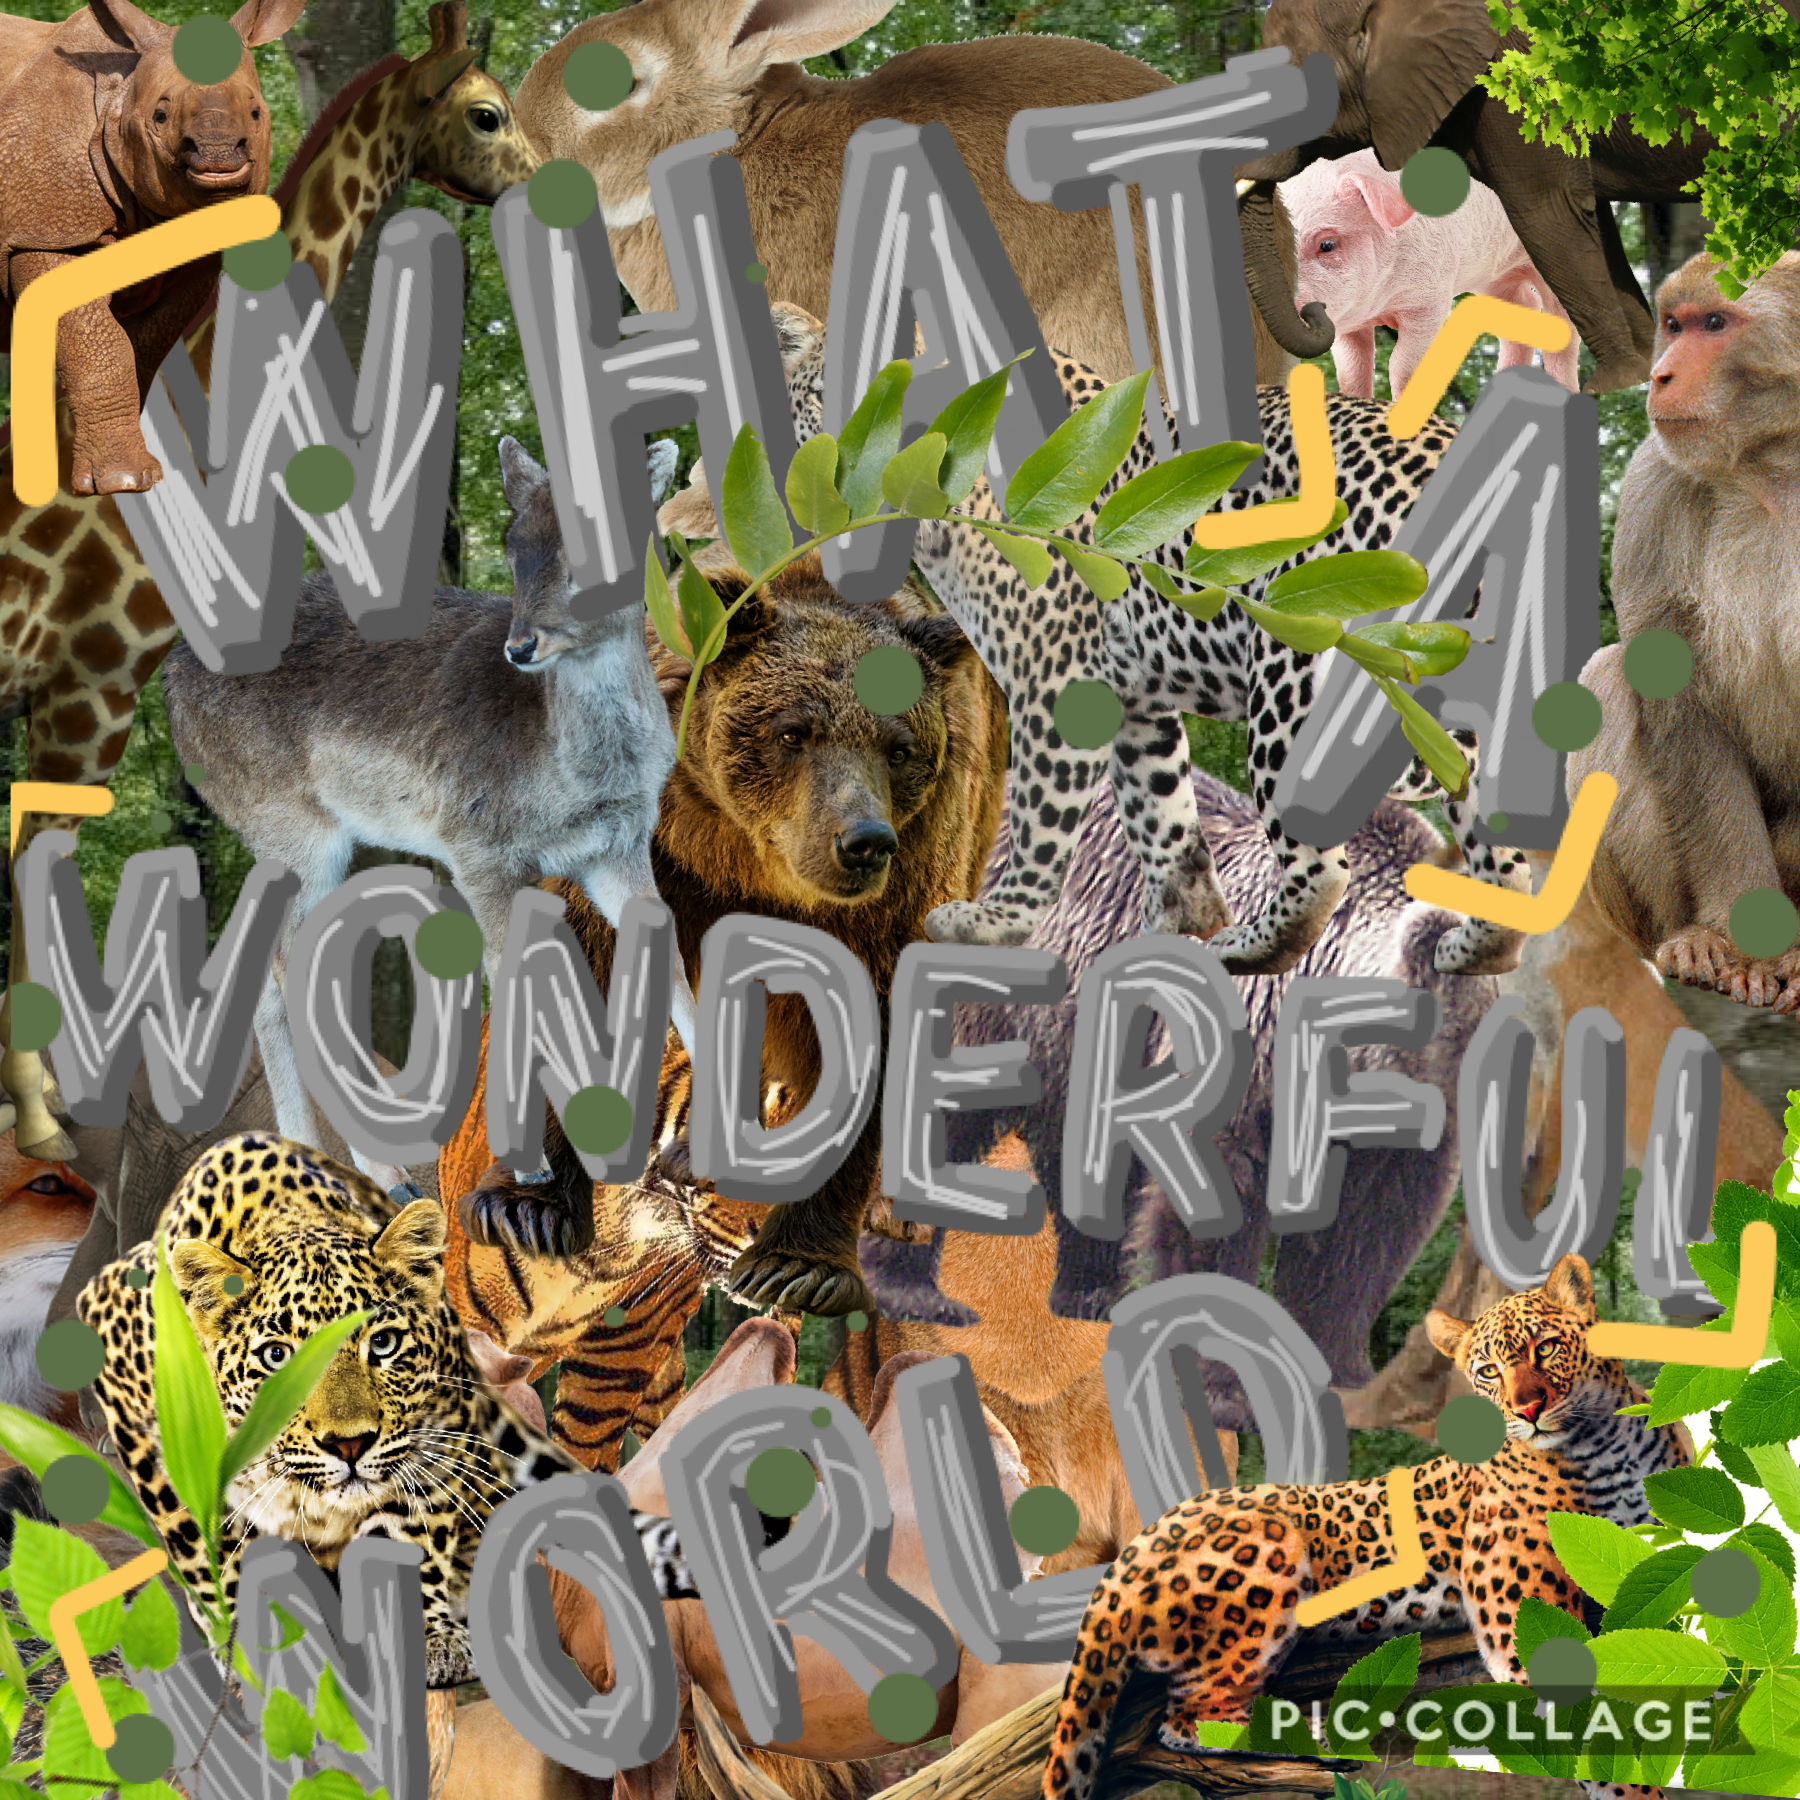 🐅🐆🦓🦍🦧TAP🐘🦛🦏🐪🐫🦒🦘🐃🐂🐄🐖🐏🐑🦙🐐🦌🐓  What's your favorite animal? comment below!